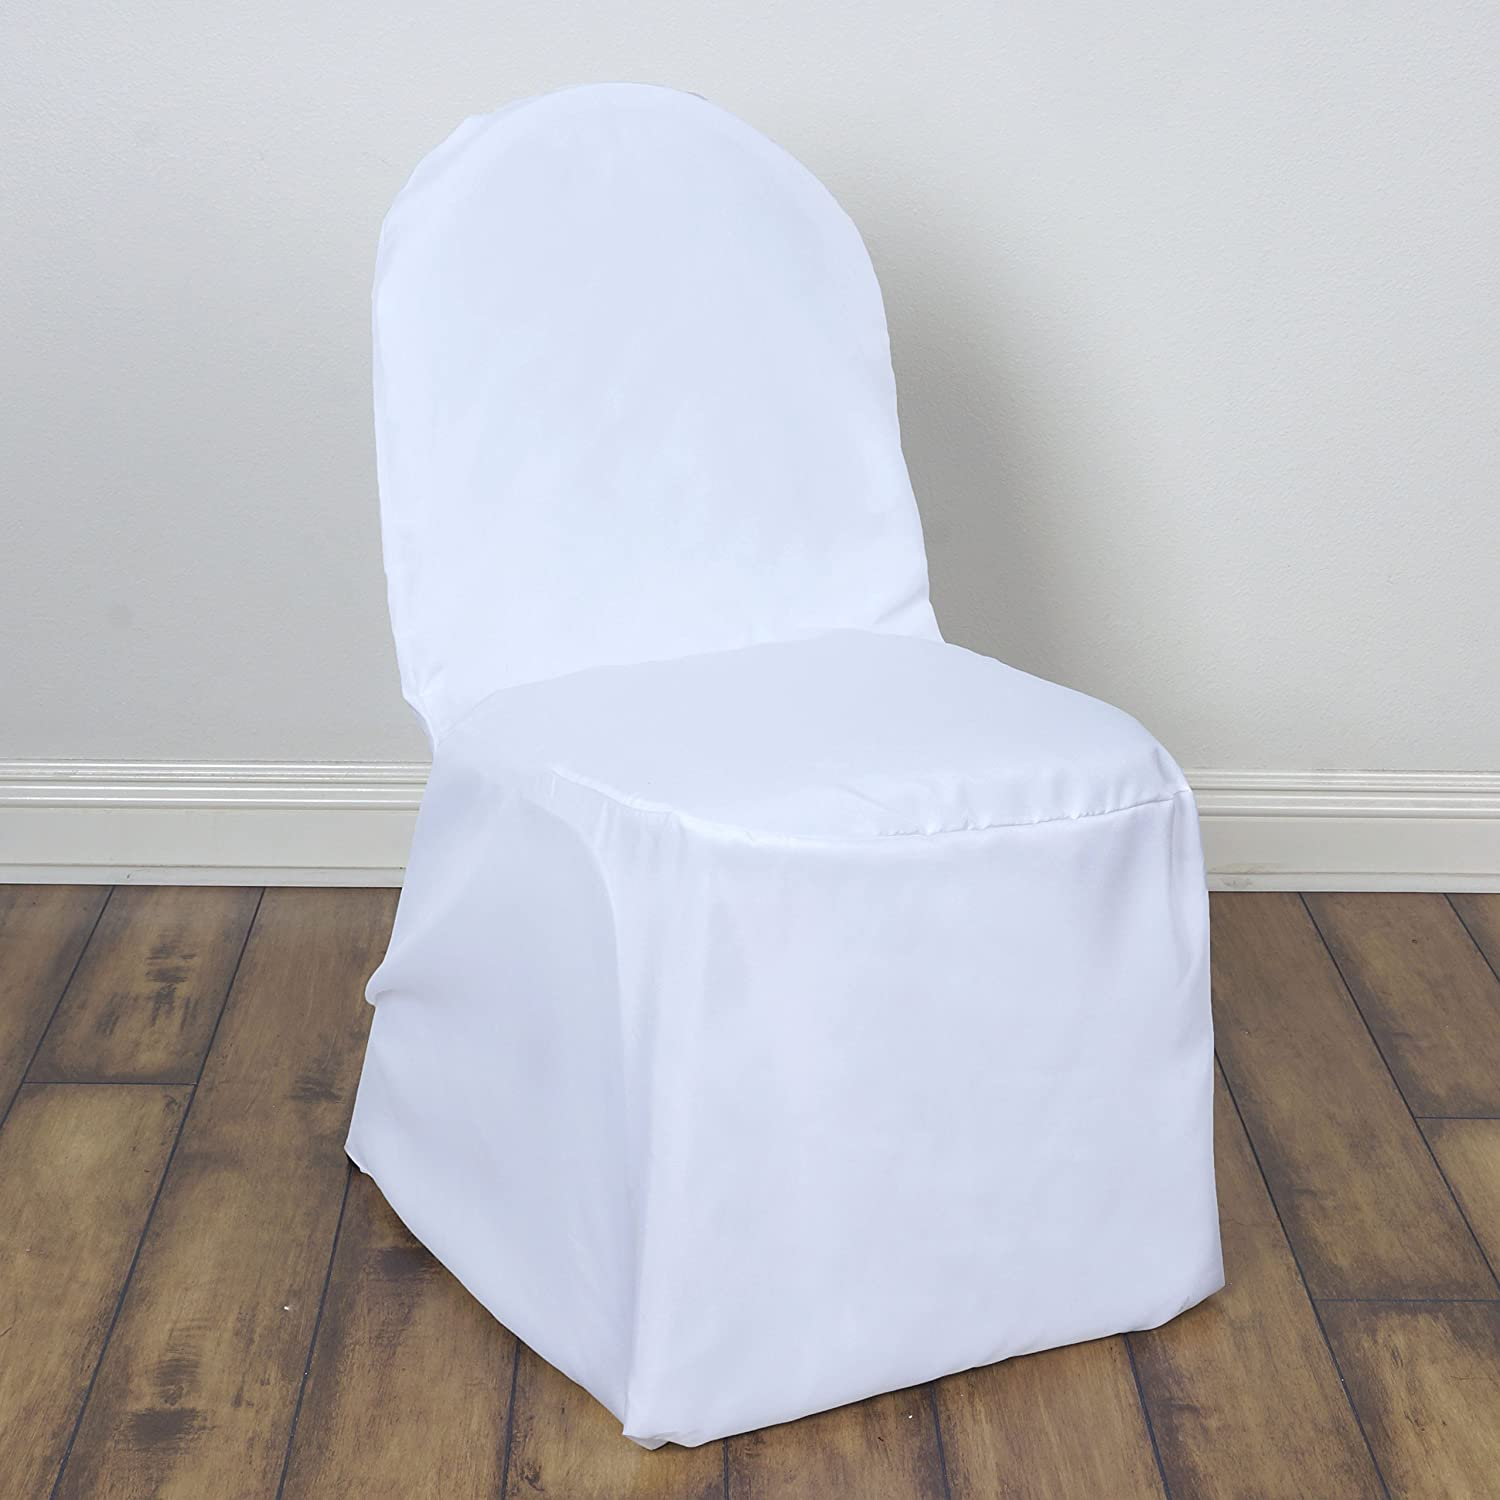 Amazon 50 pc Polyester Banquet CHAIR COVERS Wedding Supplies